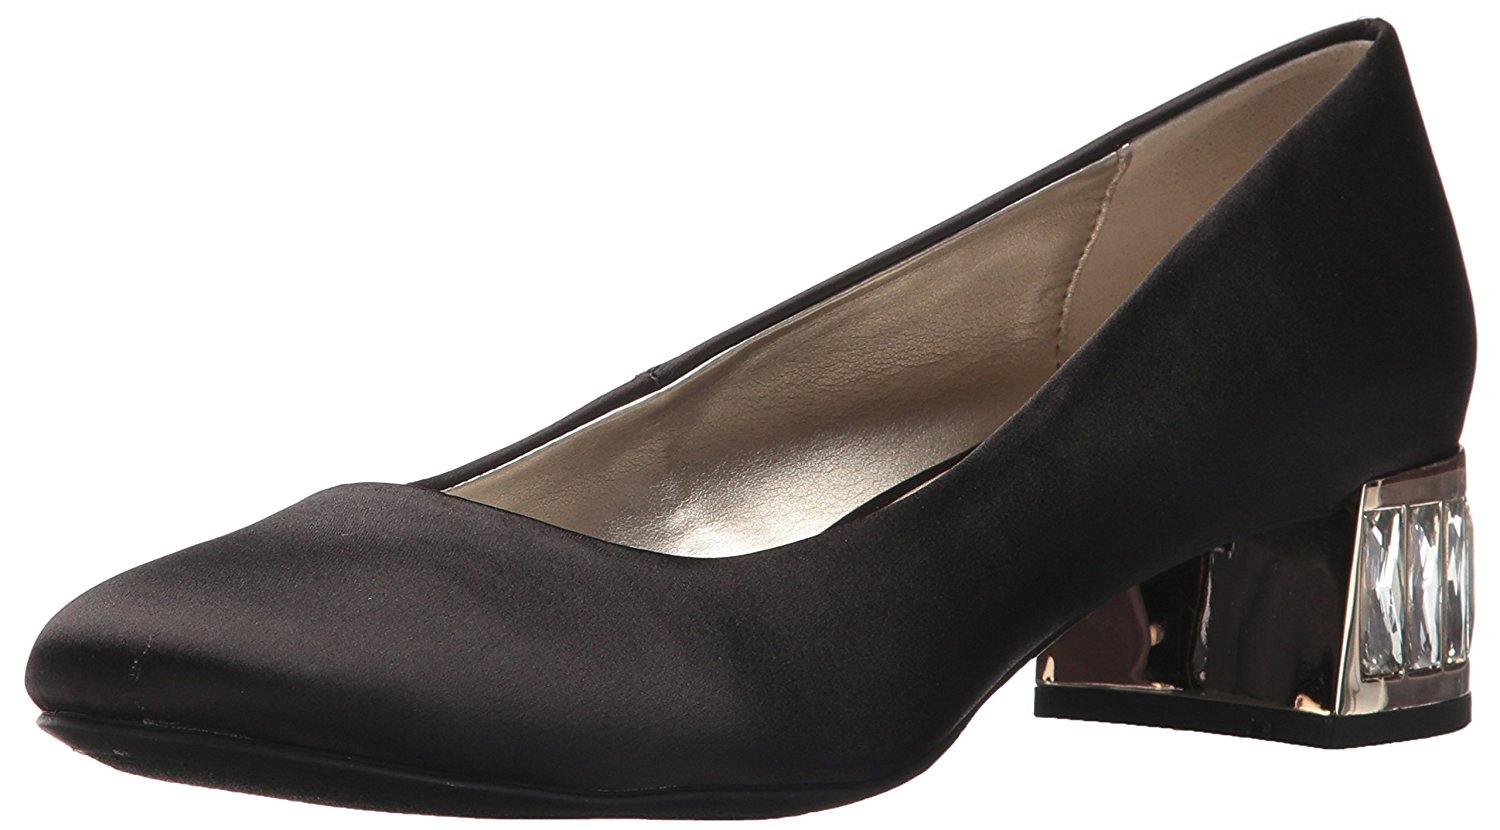 Anne Klein Womens Haedyn Fabric Round Toe Classic Pumps Black Fabric Size 110